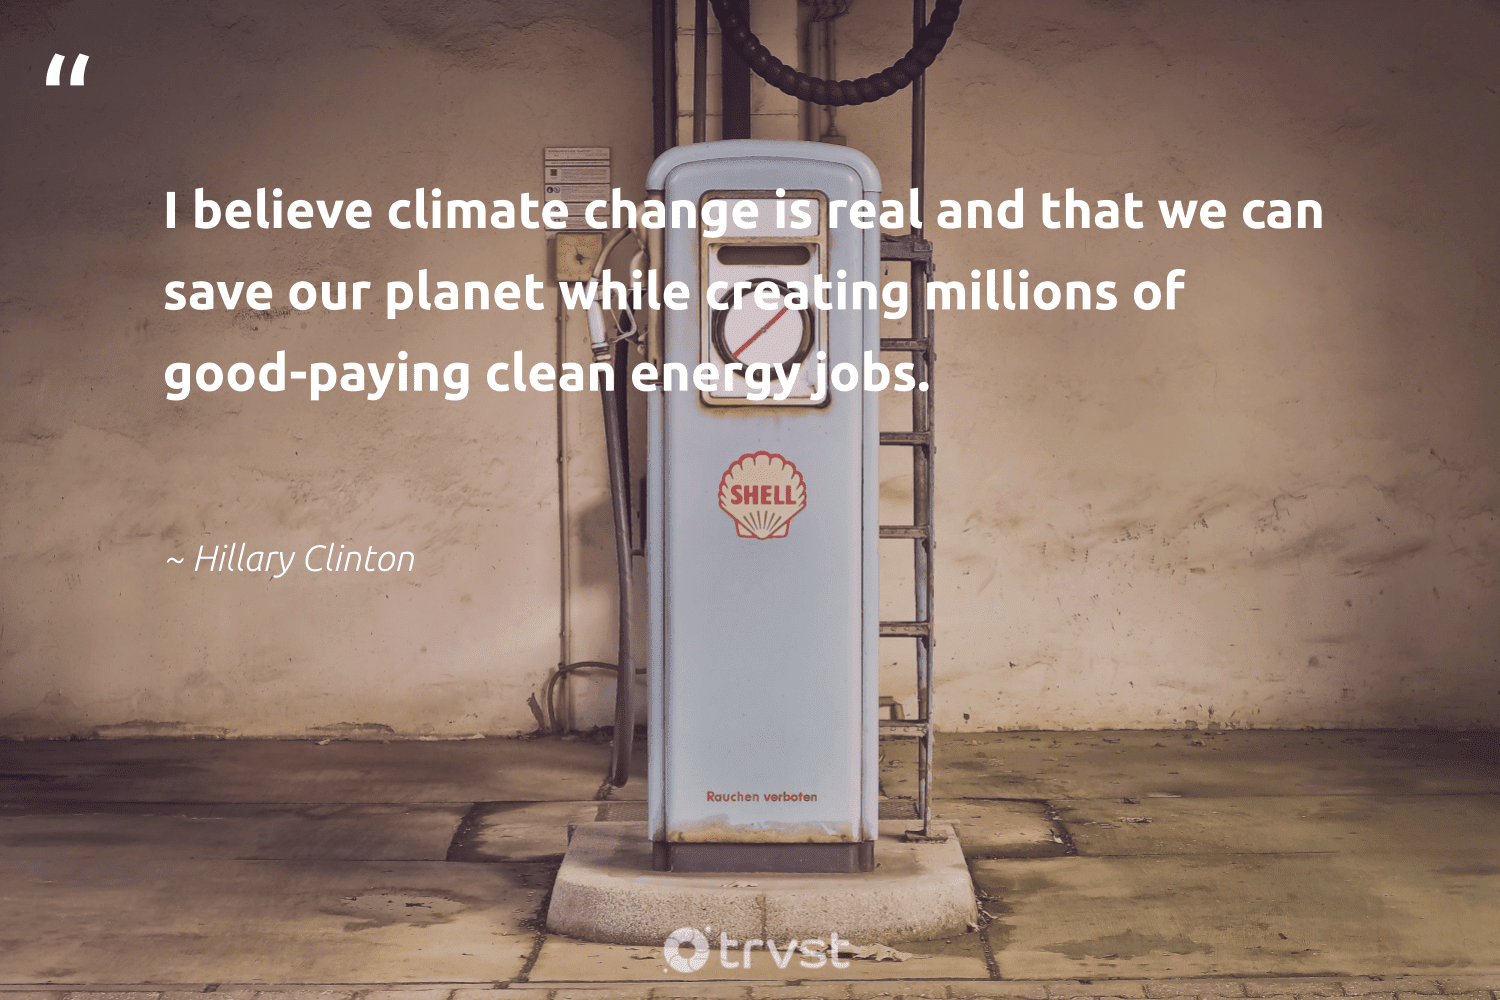 """""""I believe climate change is real and that we can save our planet while creating millions of good-paying clean energy jobs.""""  - Hillary Clinton #trvst #quotes #saveourplanet #climatechange #energy #cleanenergy #planet #climatechangeisreal #climate #climateaction #co2 #carboncapture"""